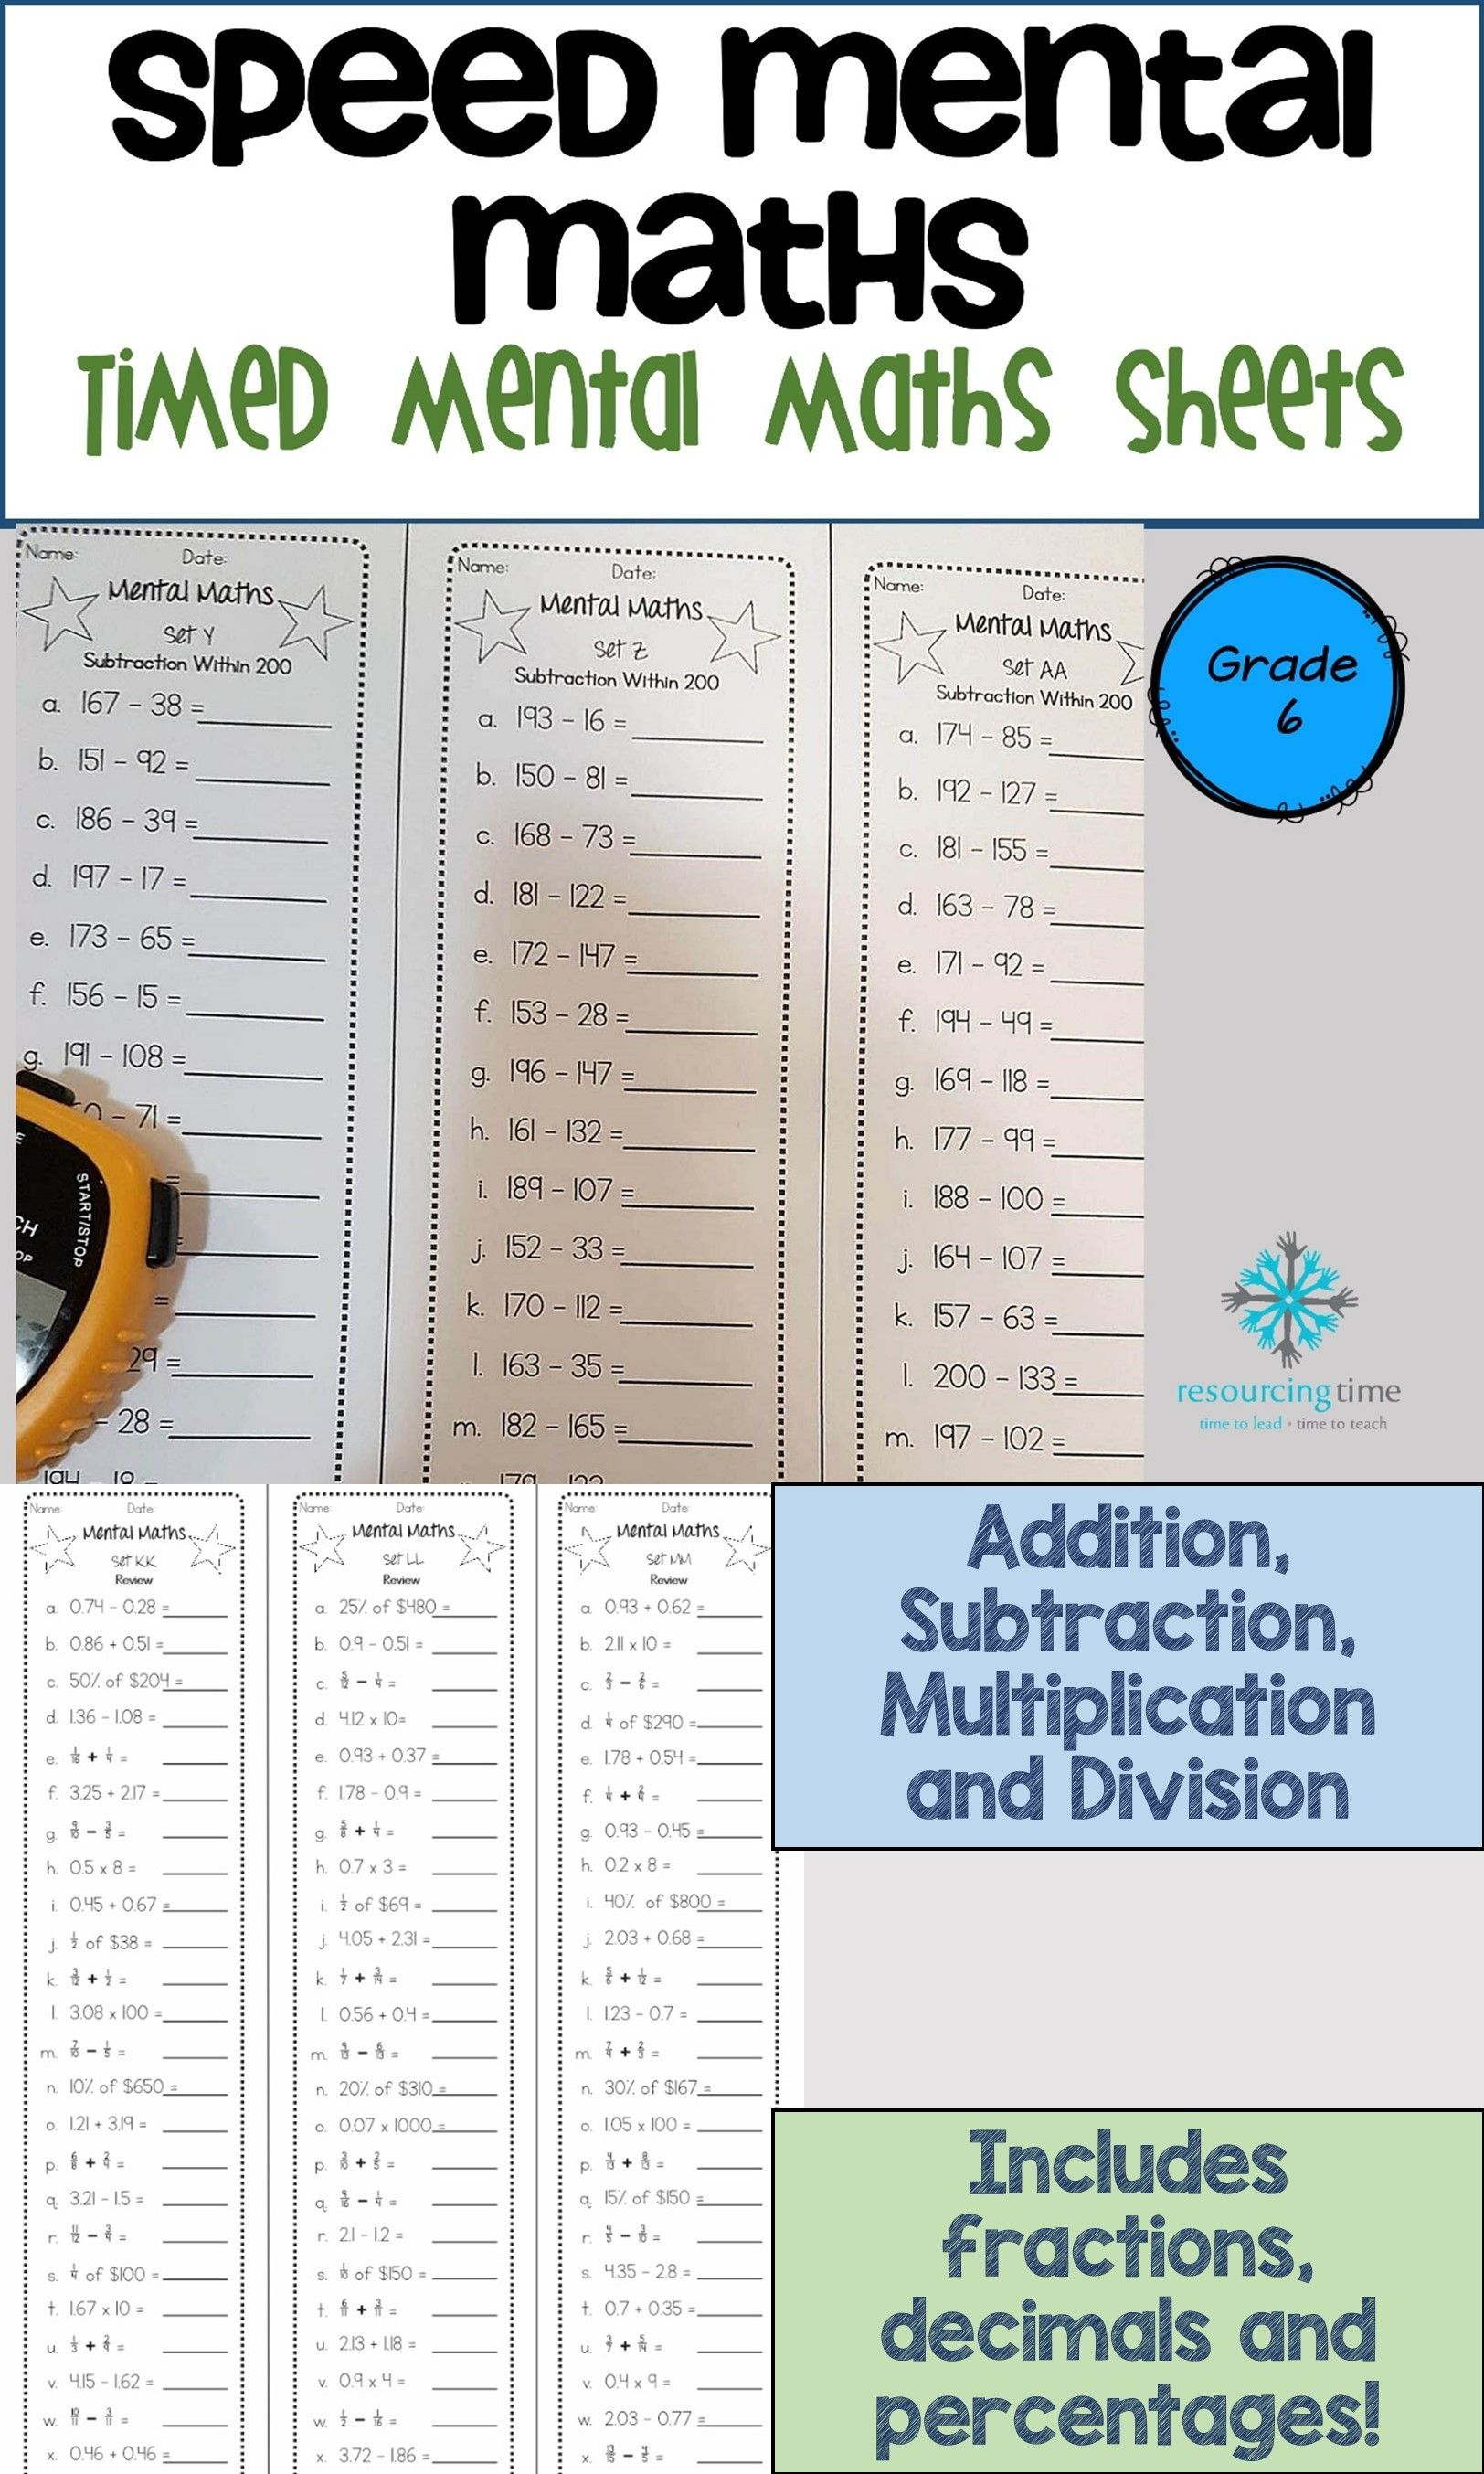 45 Mental Maths Sheets For Your Students To Increase Their Fluency And Accuracy With Addition Subtraction Multiplication And Div Mental Math Math Math Sheets [ 2707 x 1624 Pixel ]